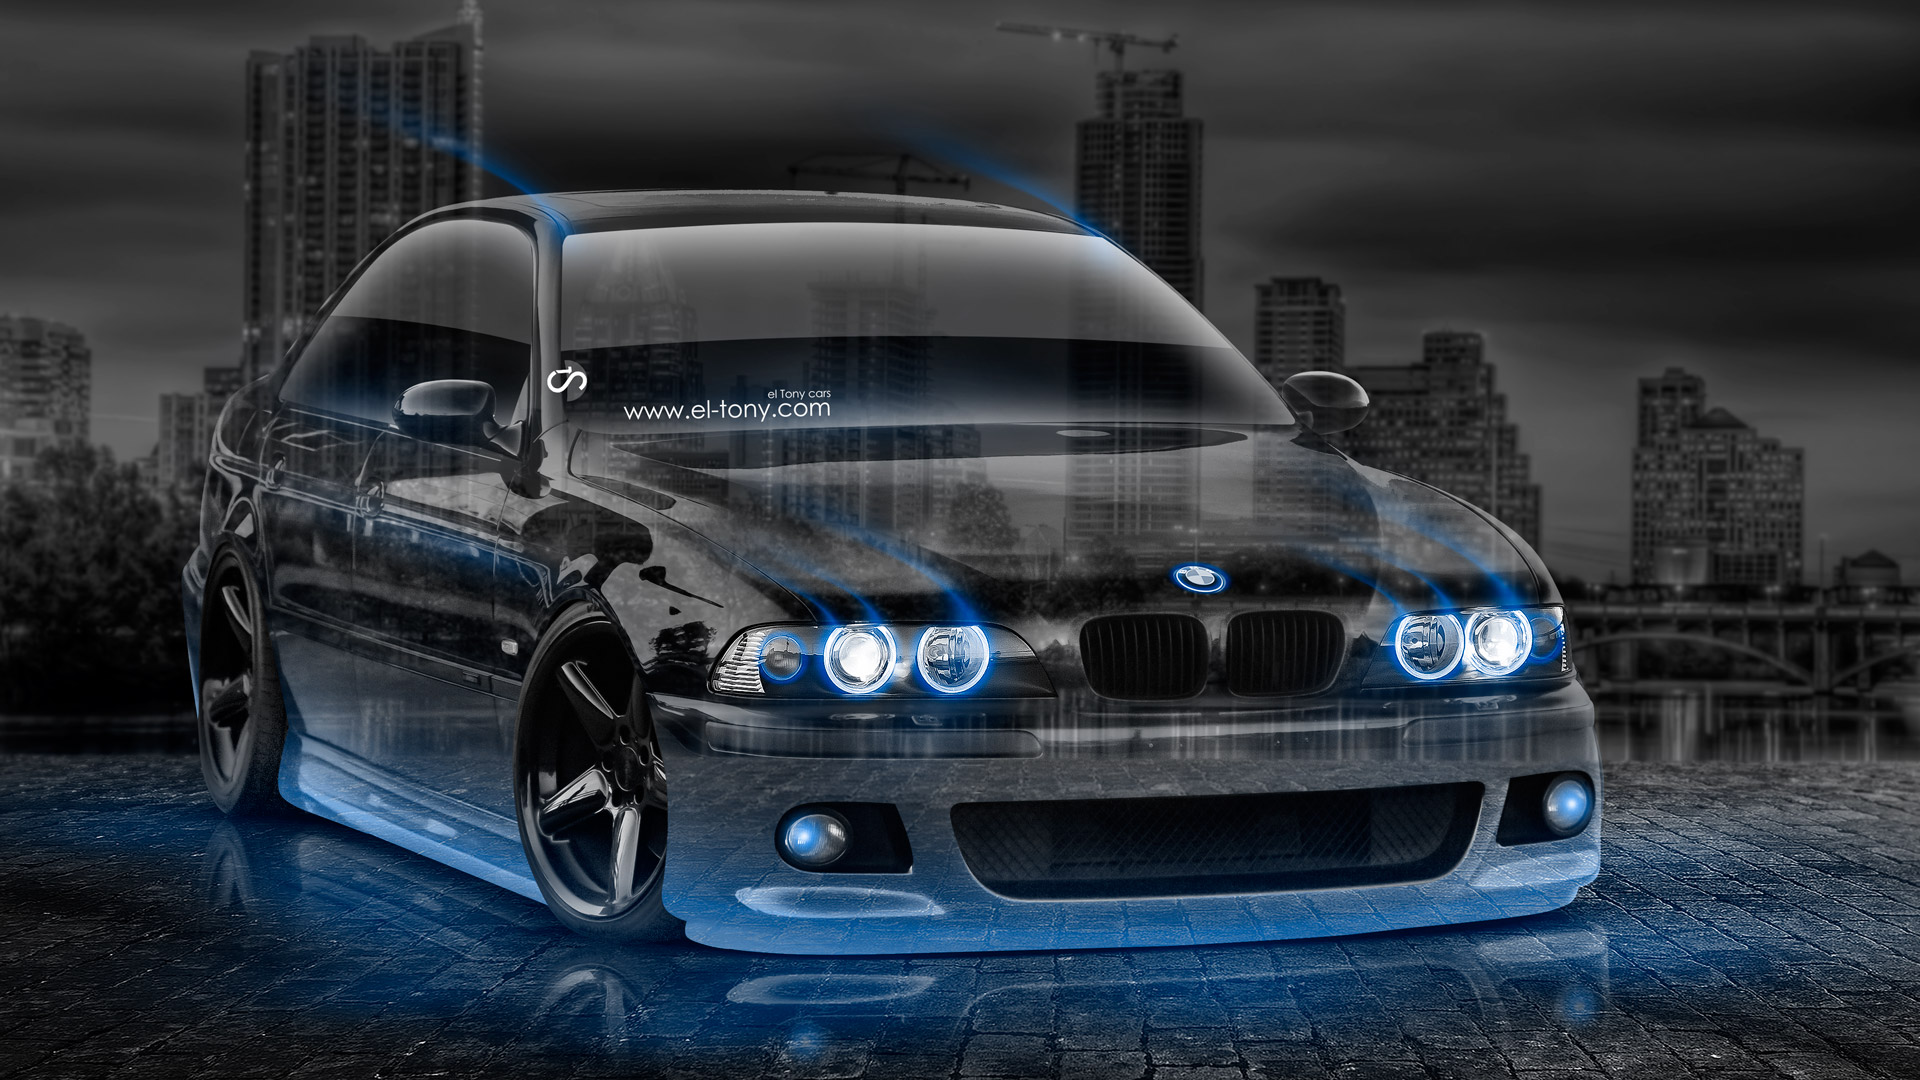 Bmw M5 Tuning Crystal City Car 2015 El Tony